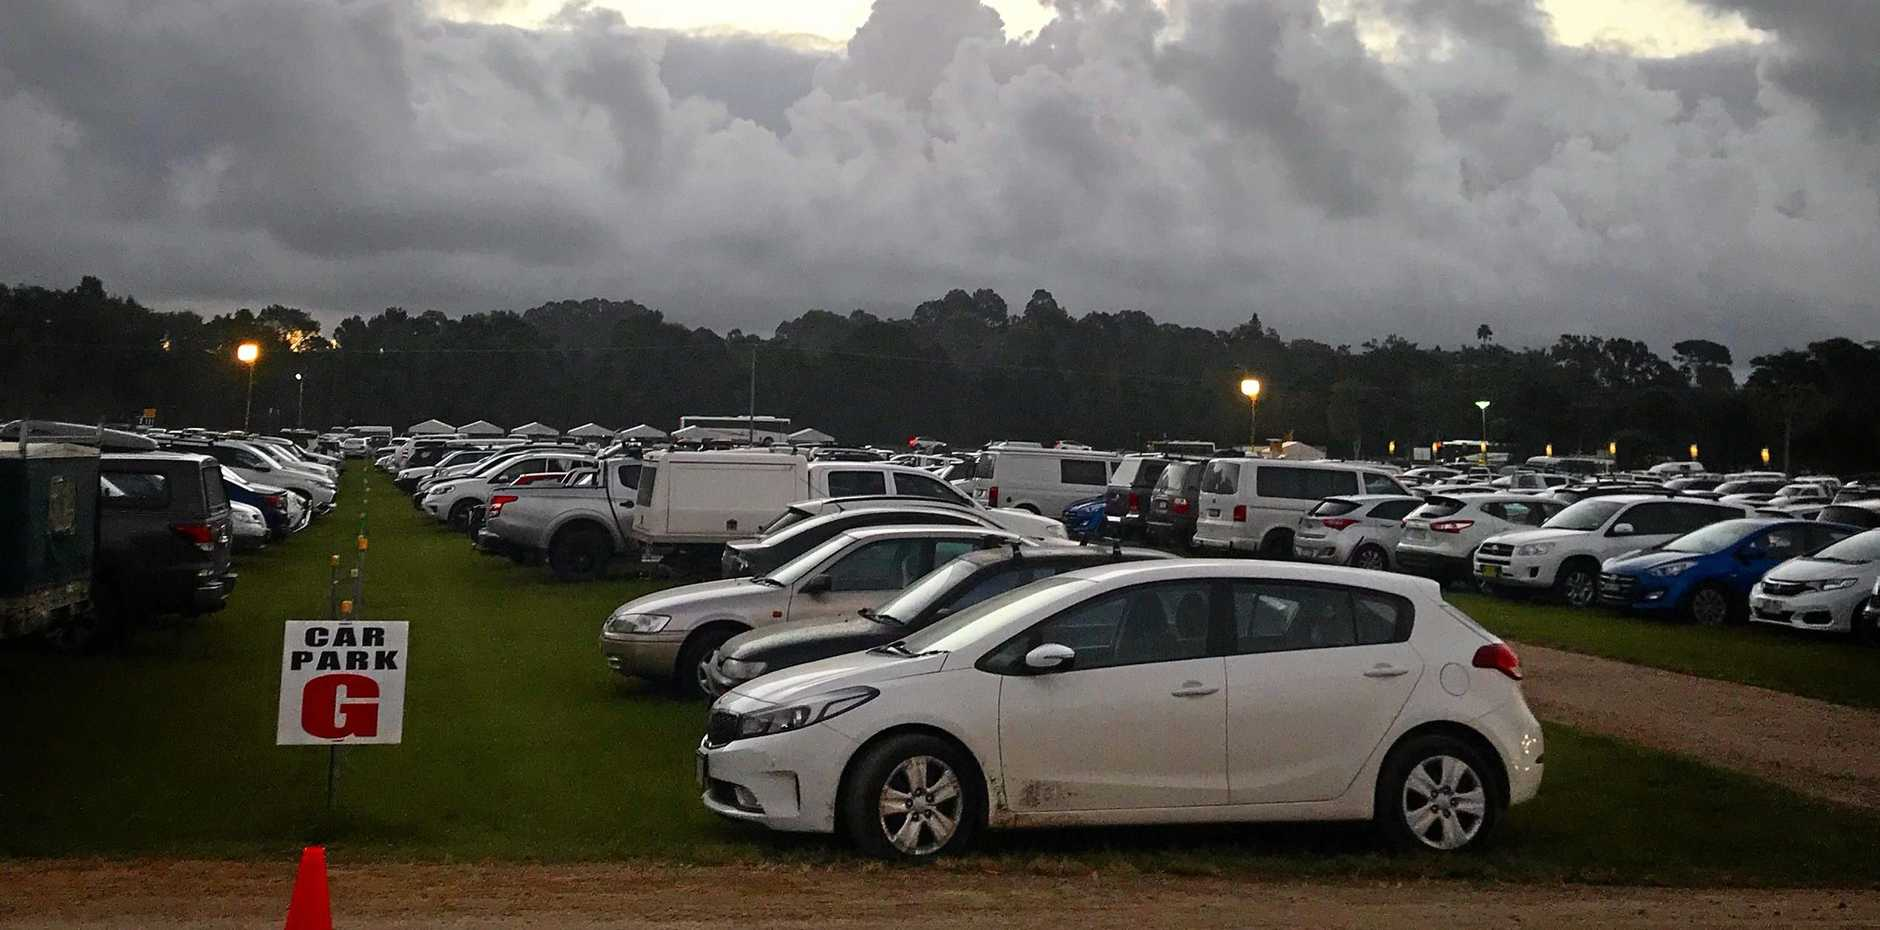 Paid parking will be introduced at the 2019 Bluesfest event.